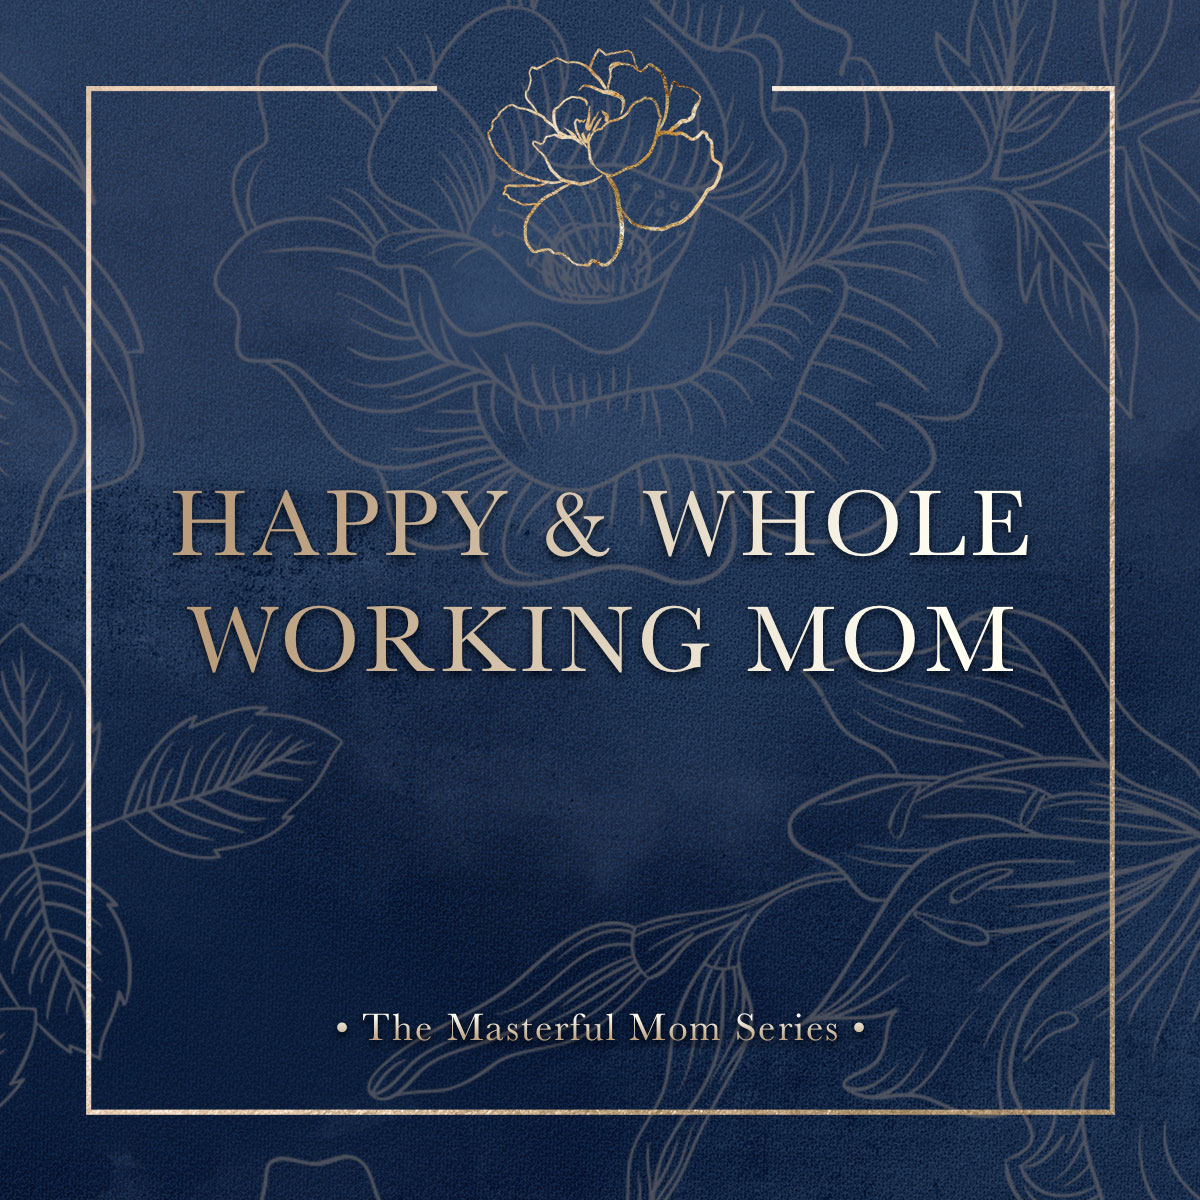 Happy & Whole Working Mom Course